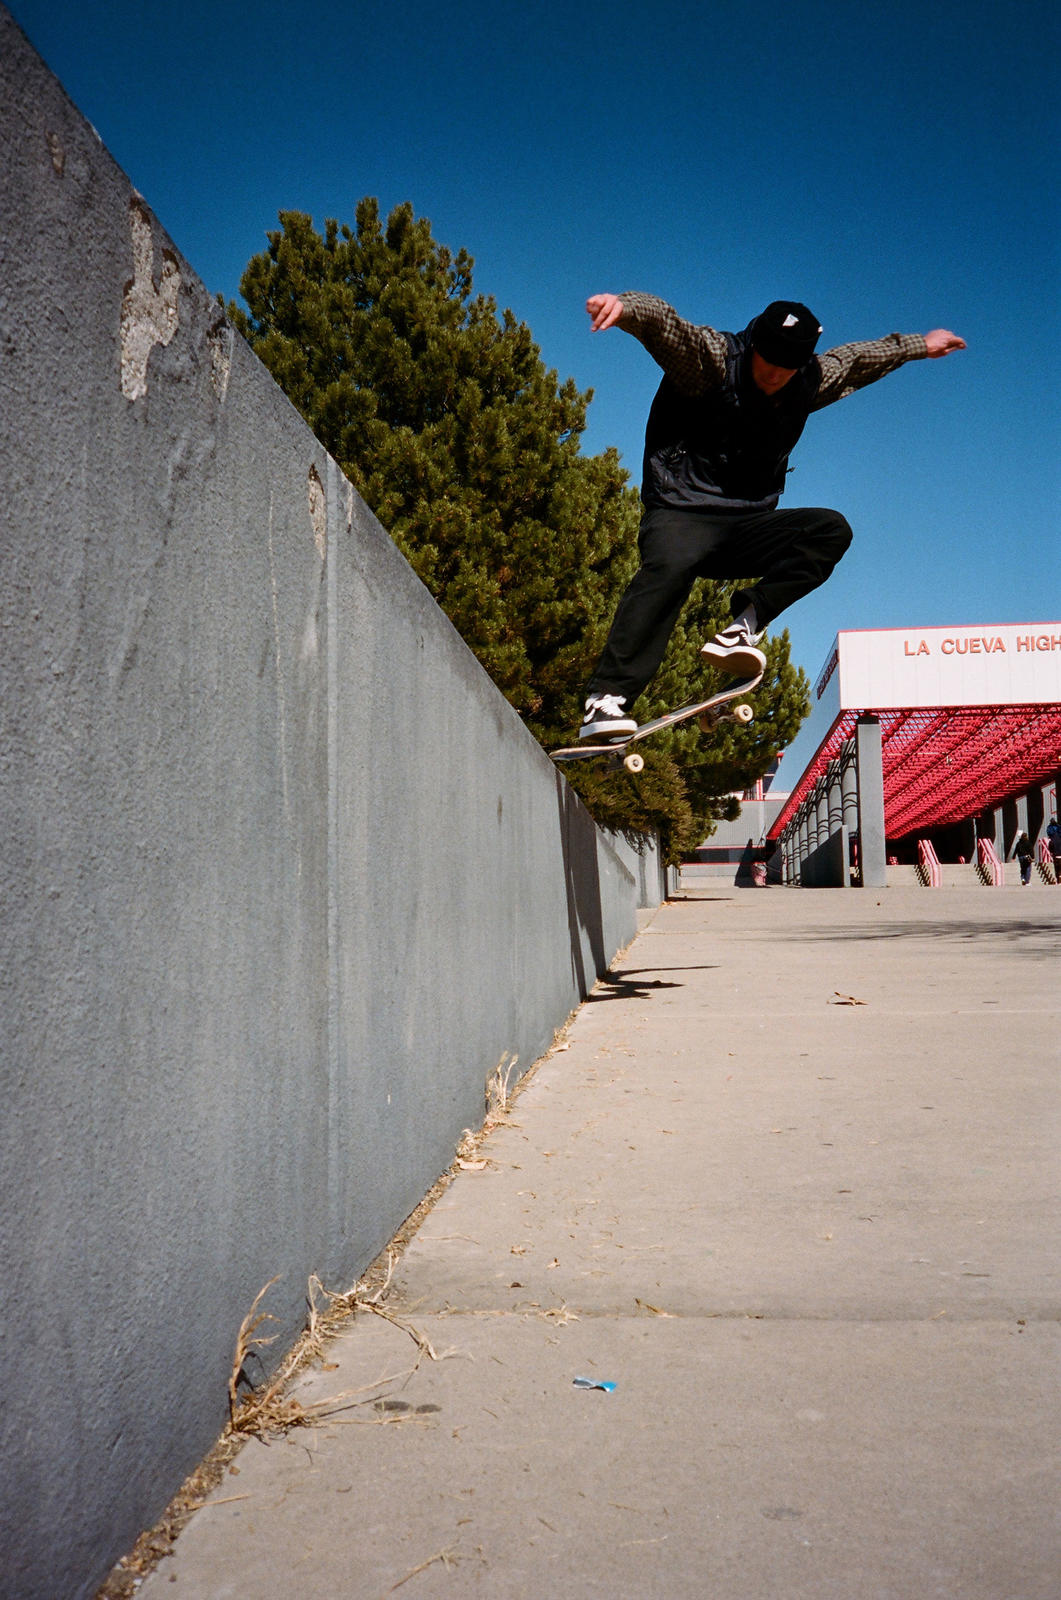 This 50-Year-Old Skate Legend is Still Charging 9